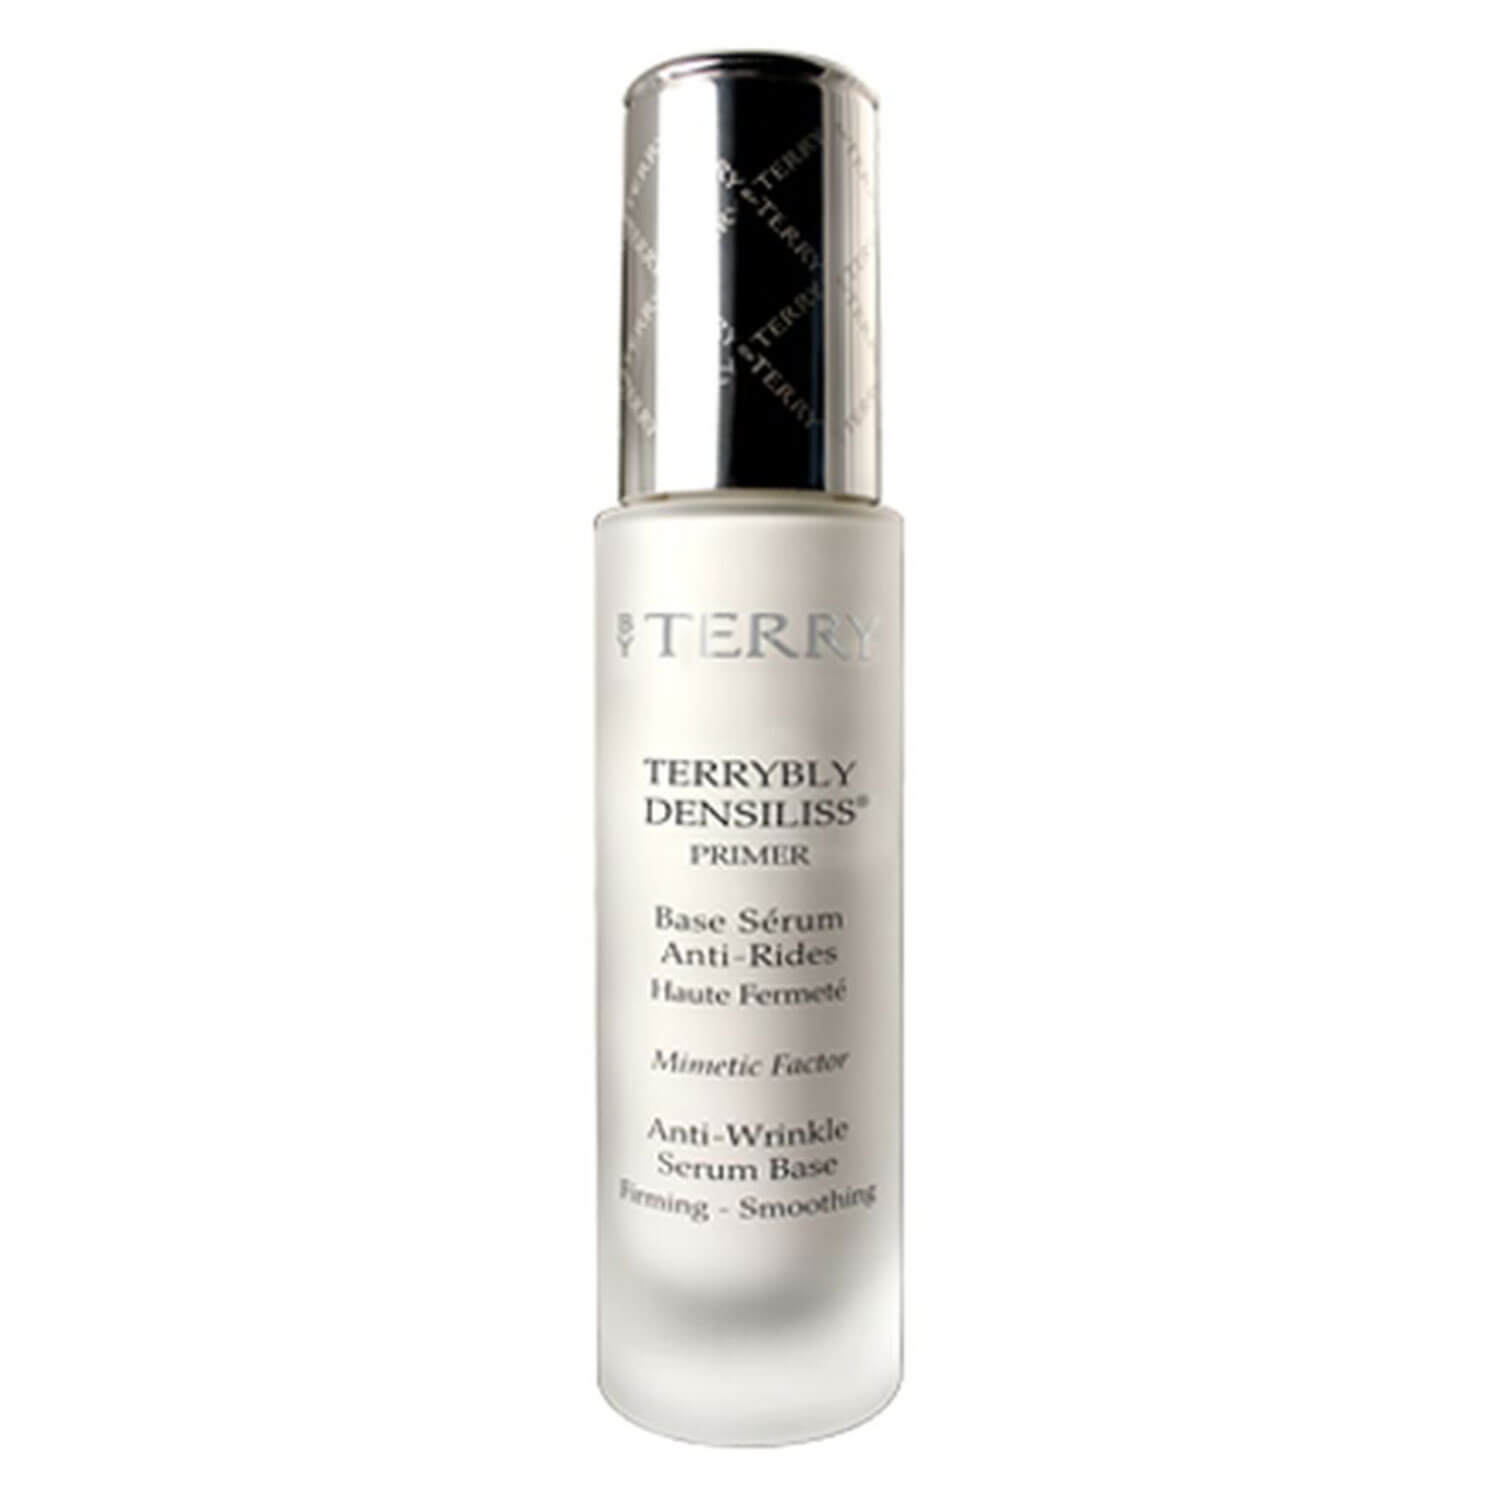 By Terry Primer - Terrybly Densiliss Primer - 30ml